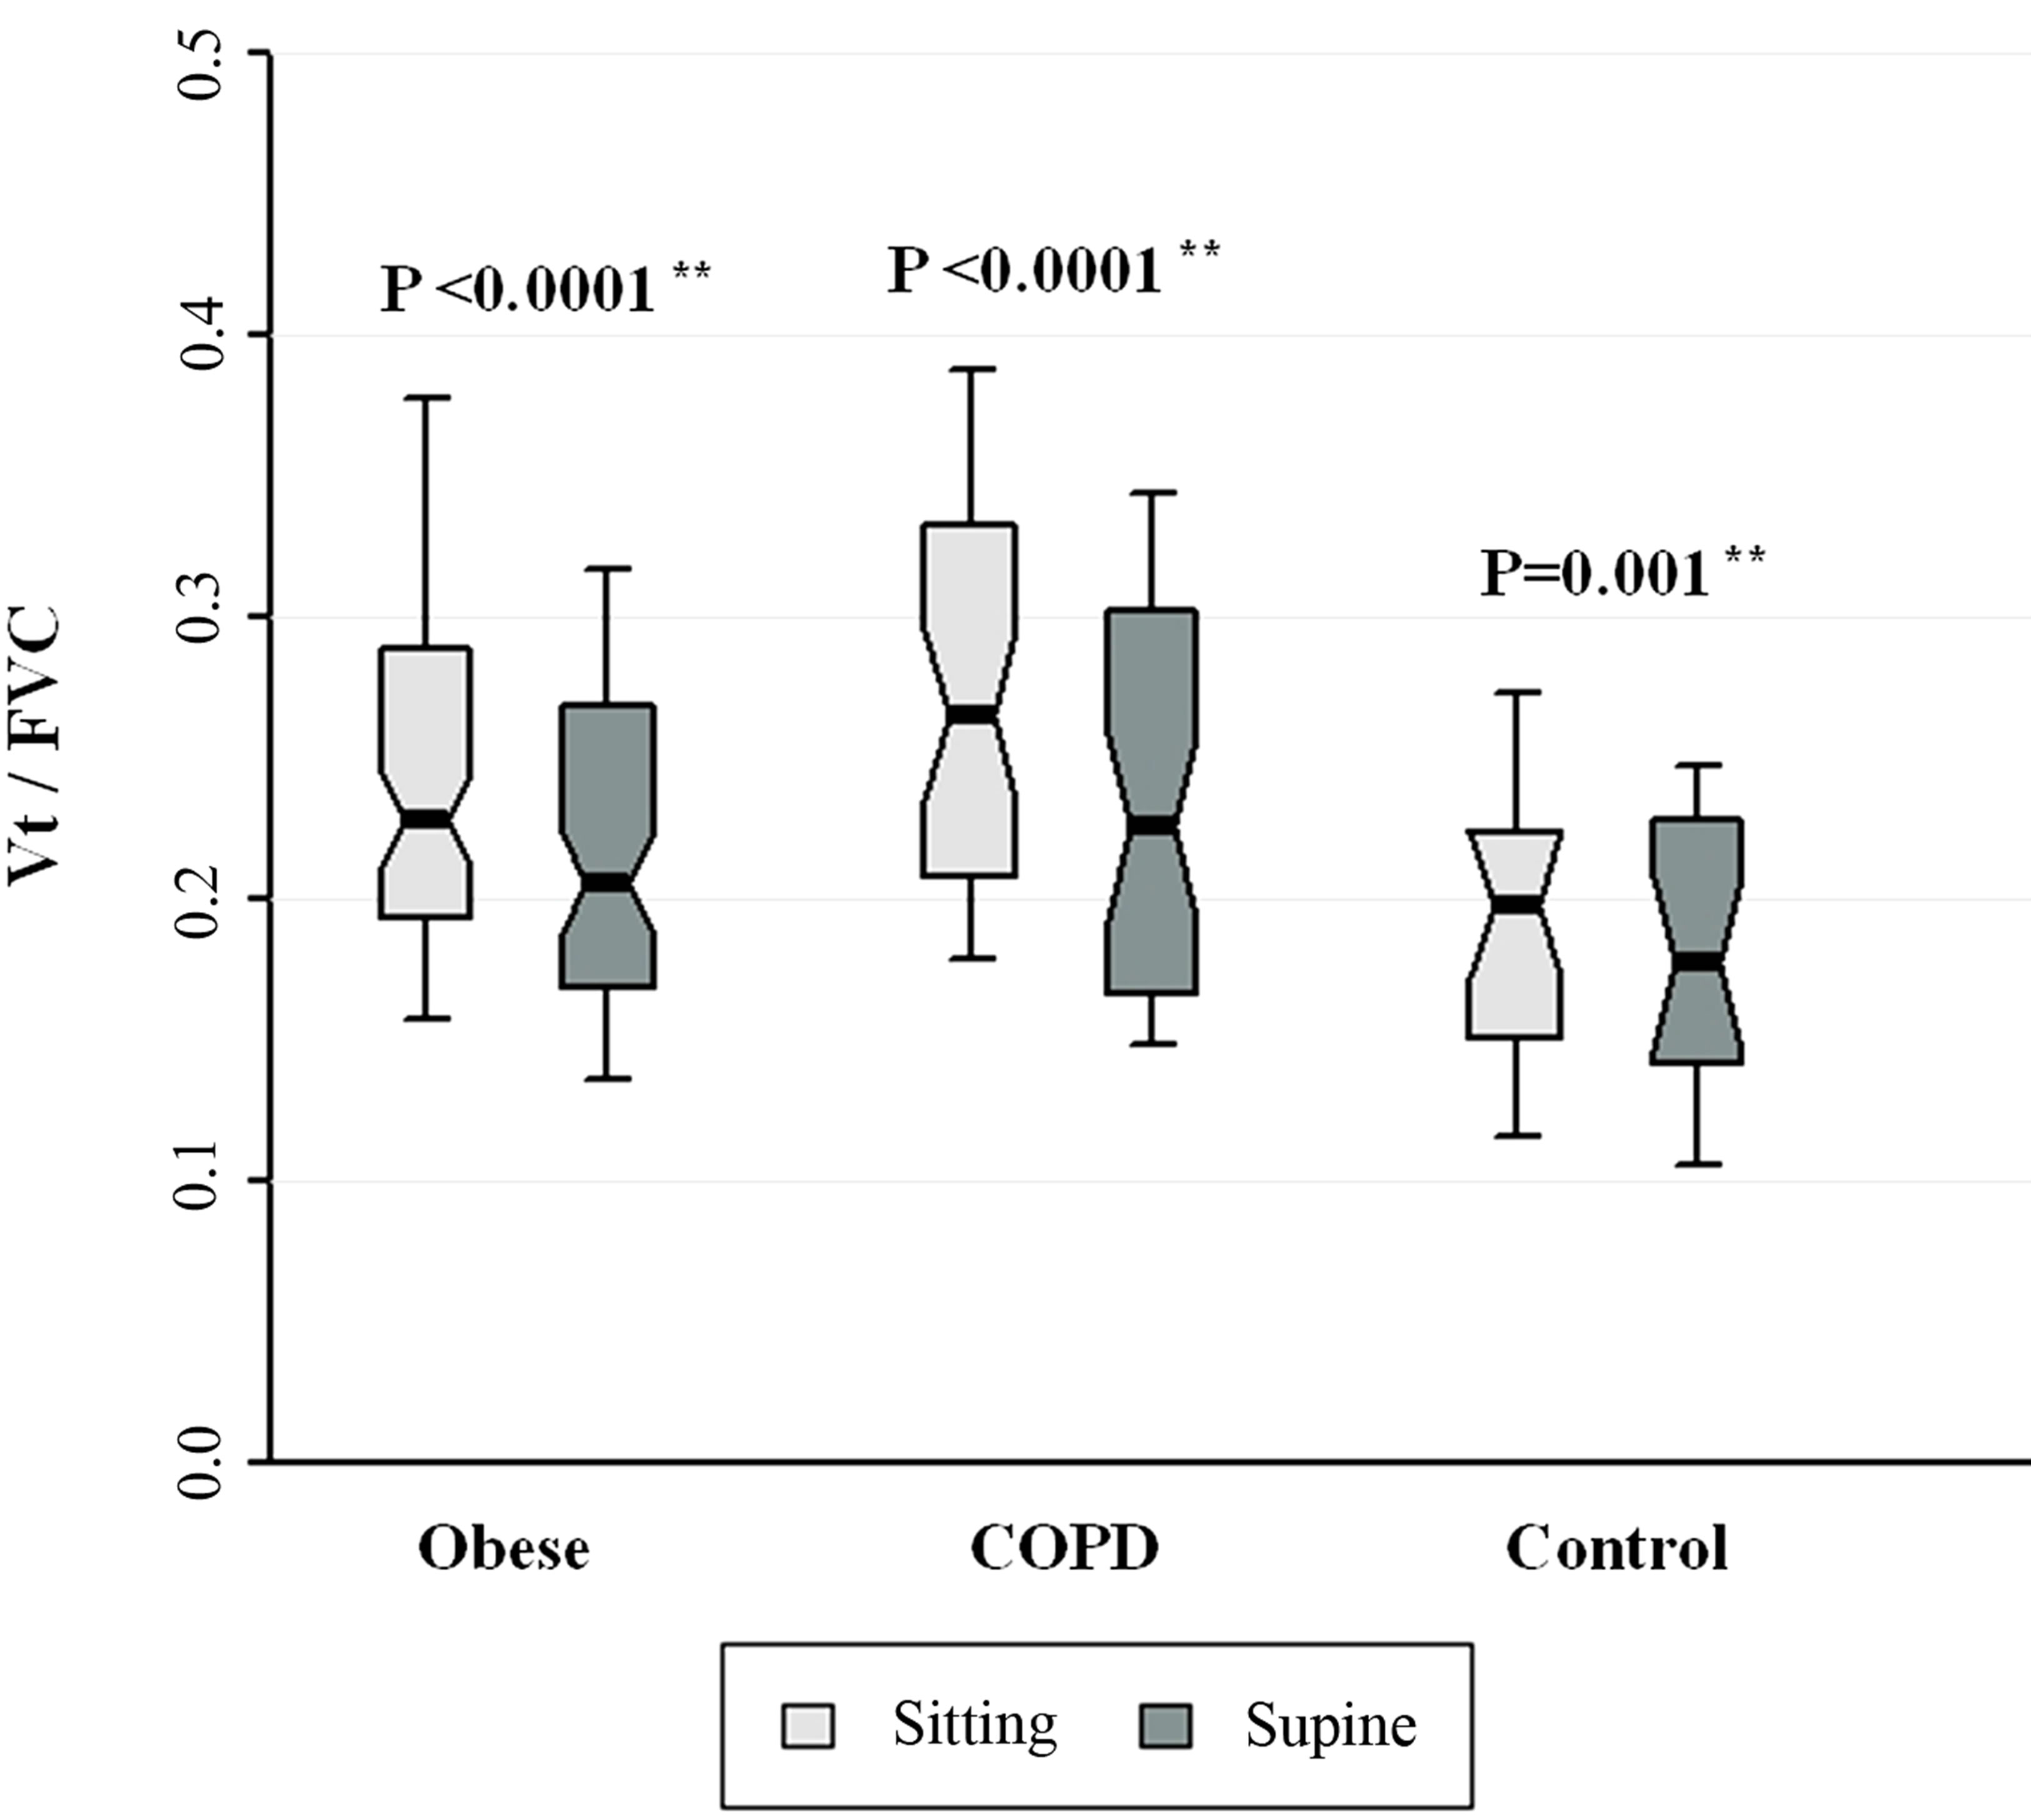 Breathing Intolerance Index In Copd And Obesity A Comparative Observational Study